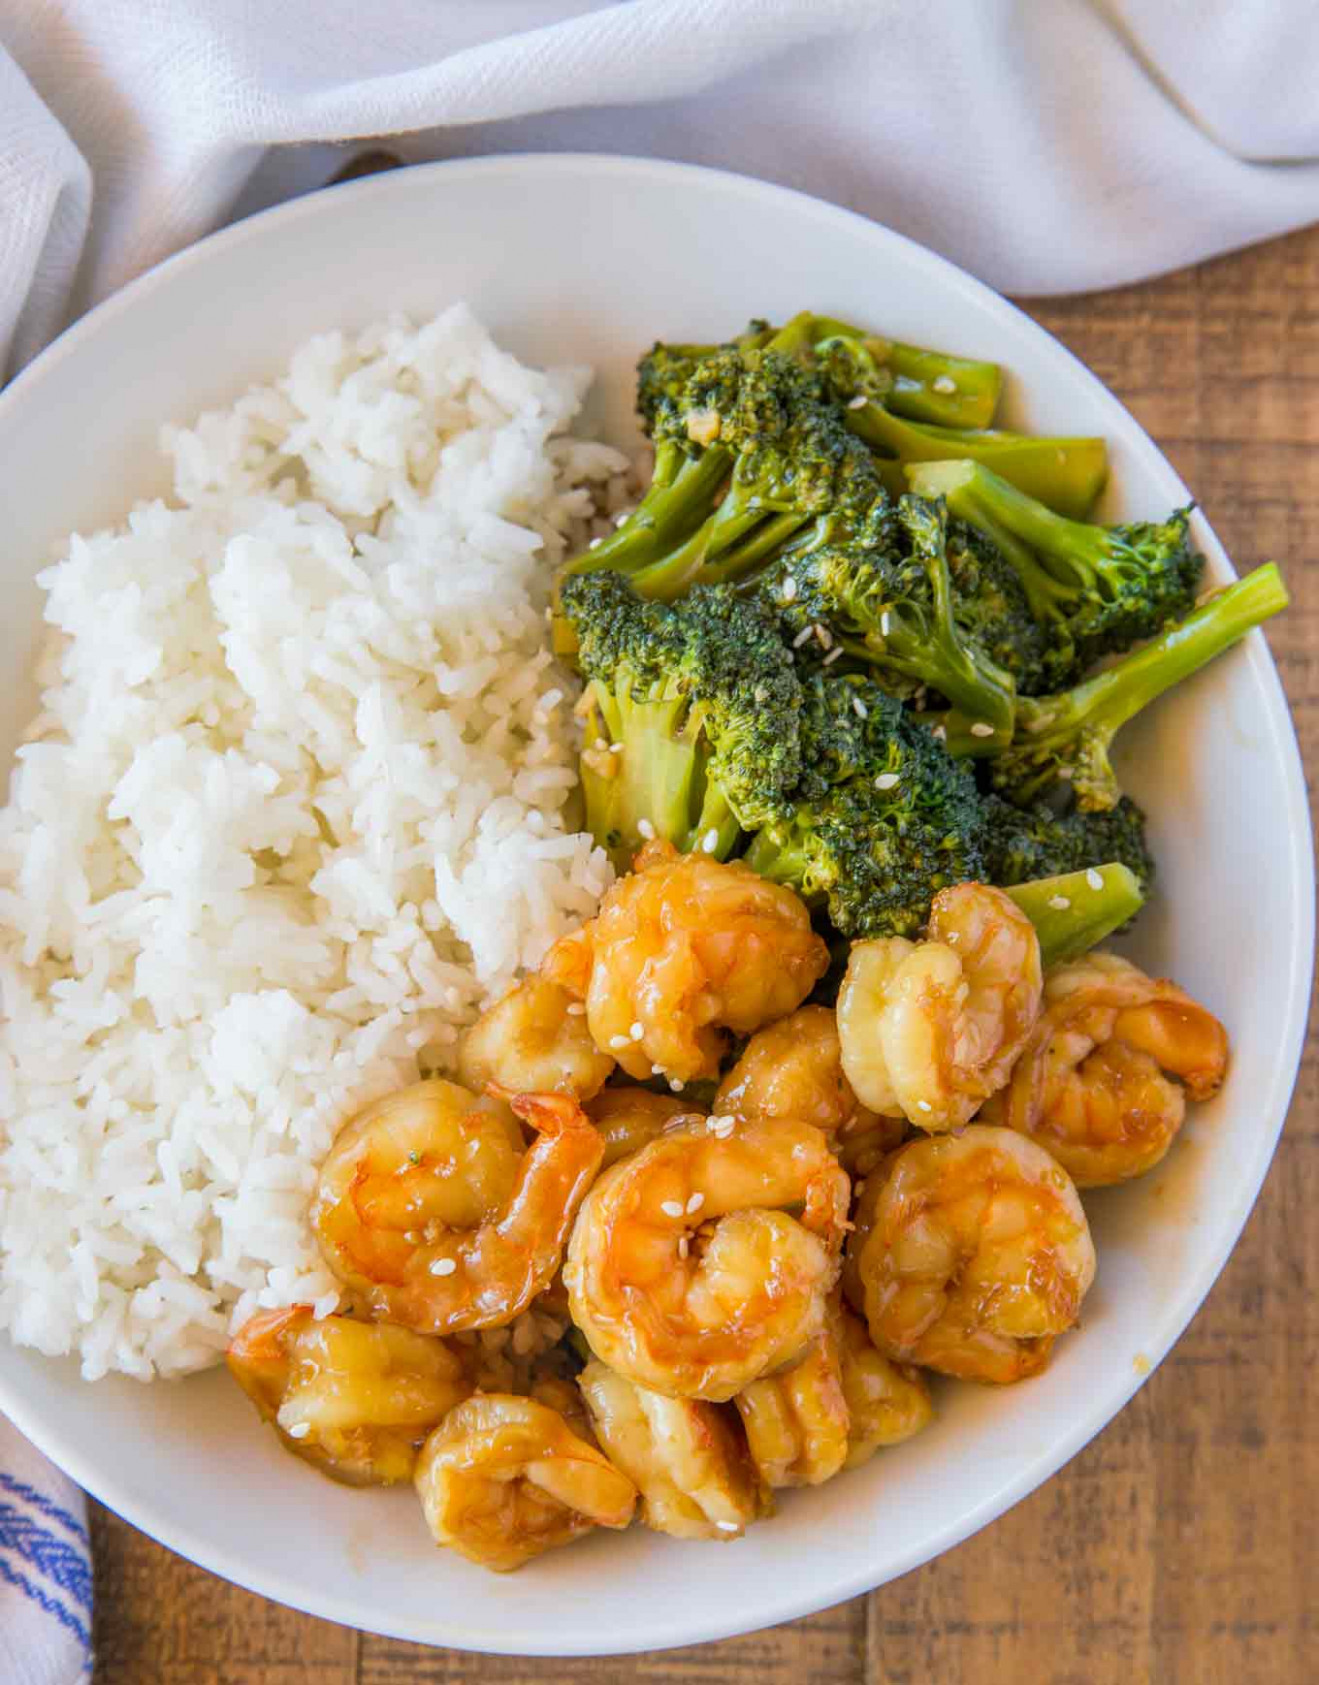 Chinese Shrimp And Broccoli Stir Fry - Recipes With Shrimp Healthy